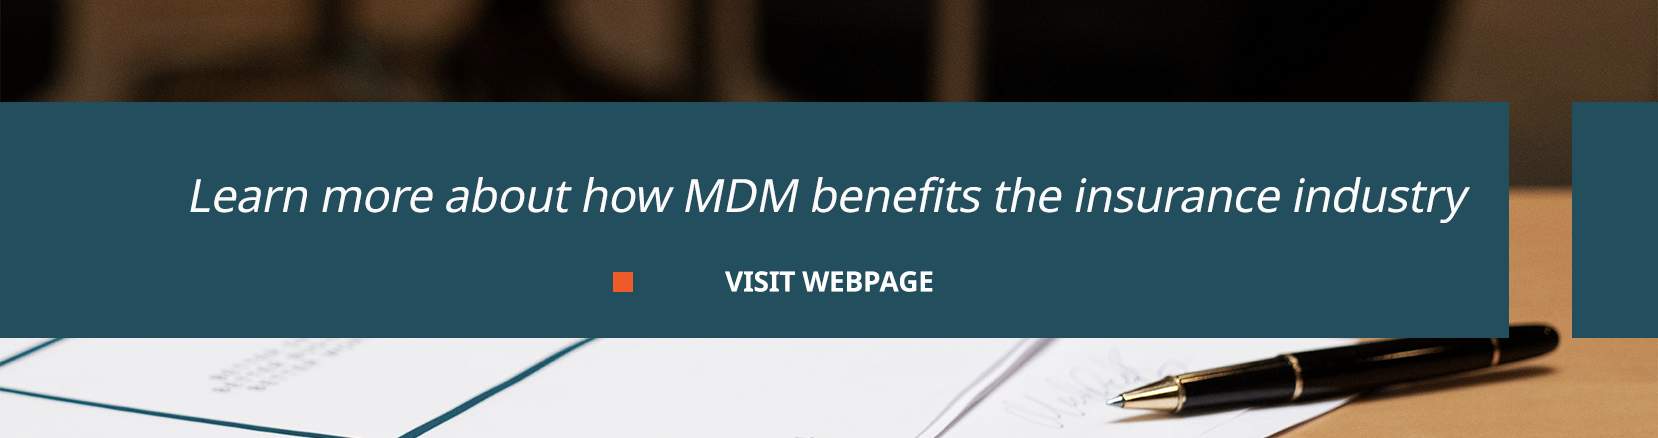 how mdm benefits the insurance industry